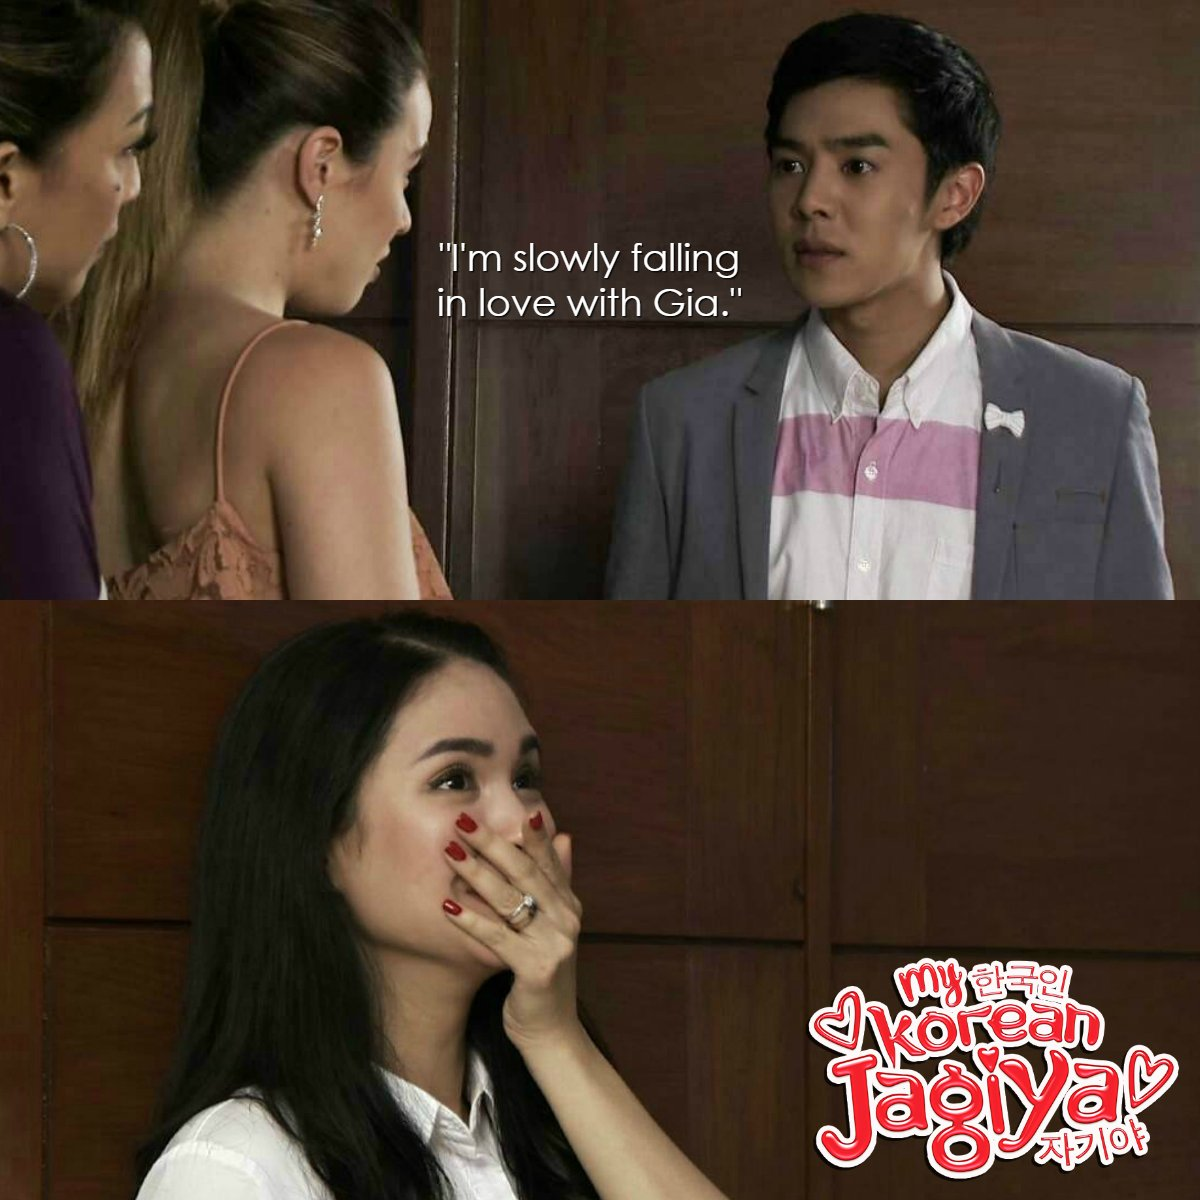 RT @GMADrama: PAK! Ansabe ni Jun Ho oppa?! Gia, pwedeng kumalma! 😍  #MKJFamBamBlues | https://t.co/kQ0dBw3OUd https://t.co/fZ3DpMV2fd